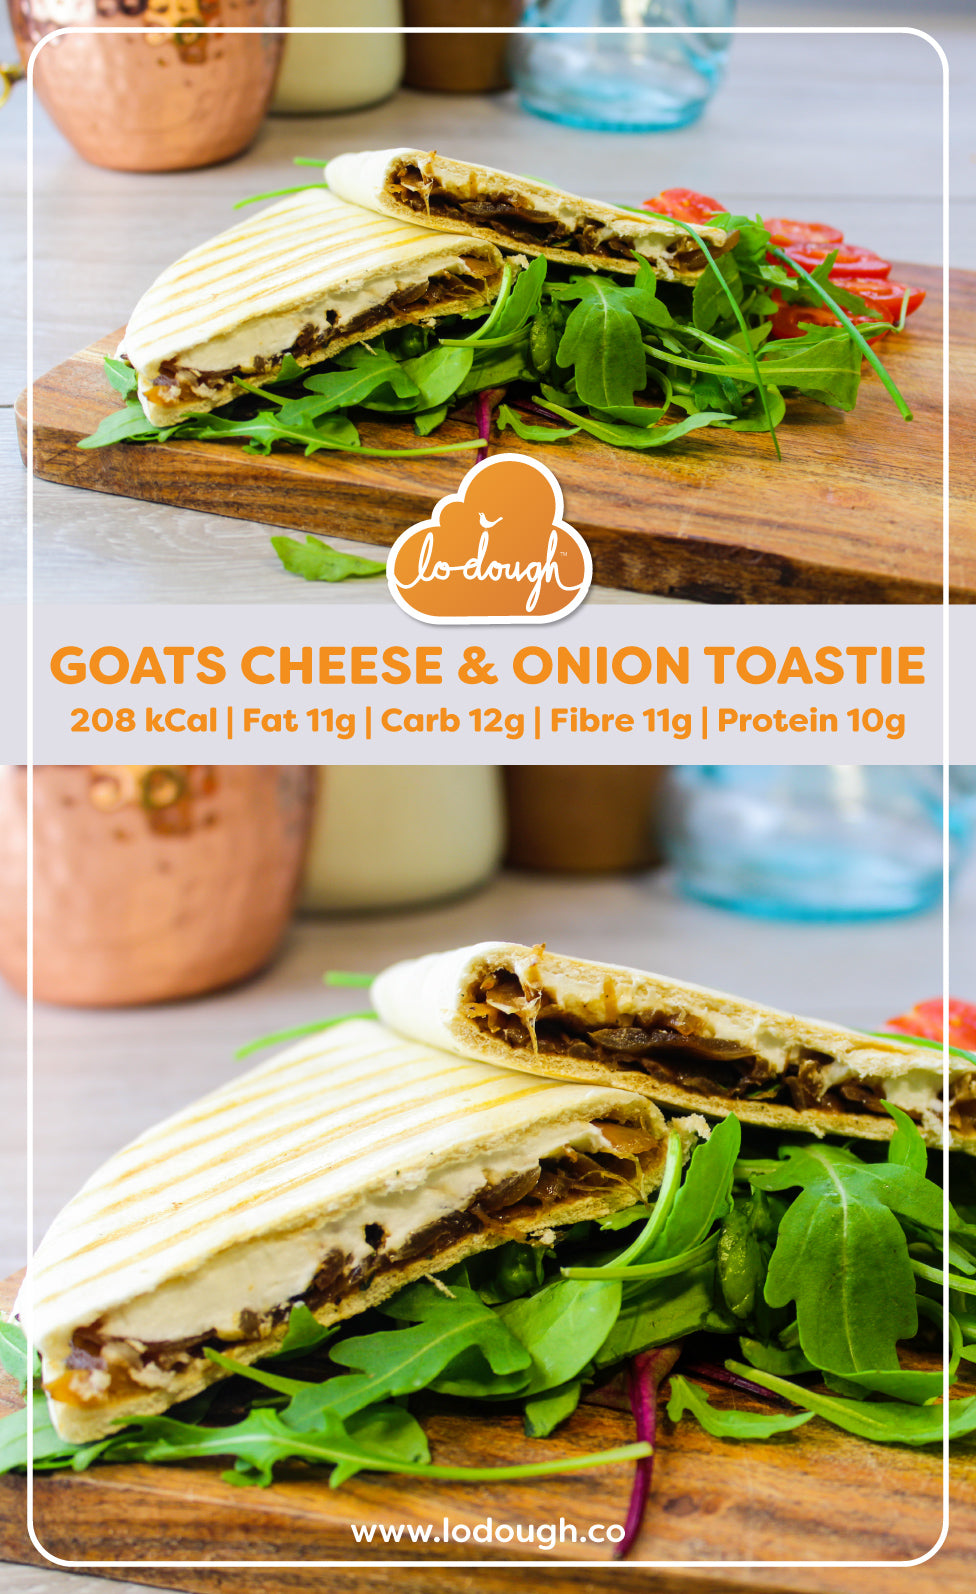 Goats Cheese and Onion Toastie